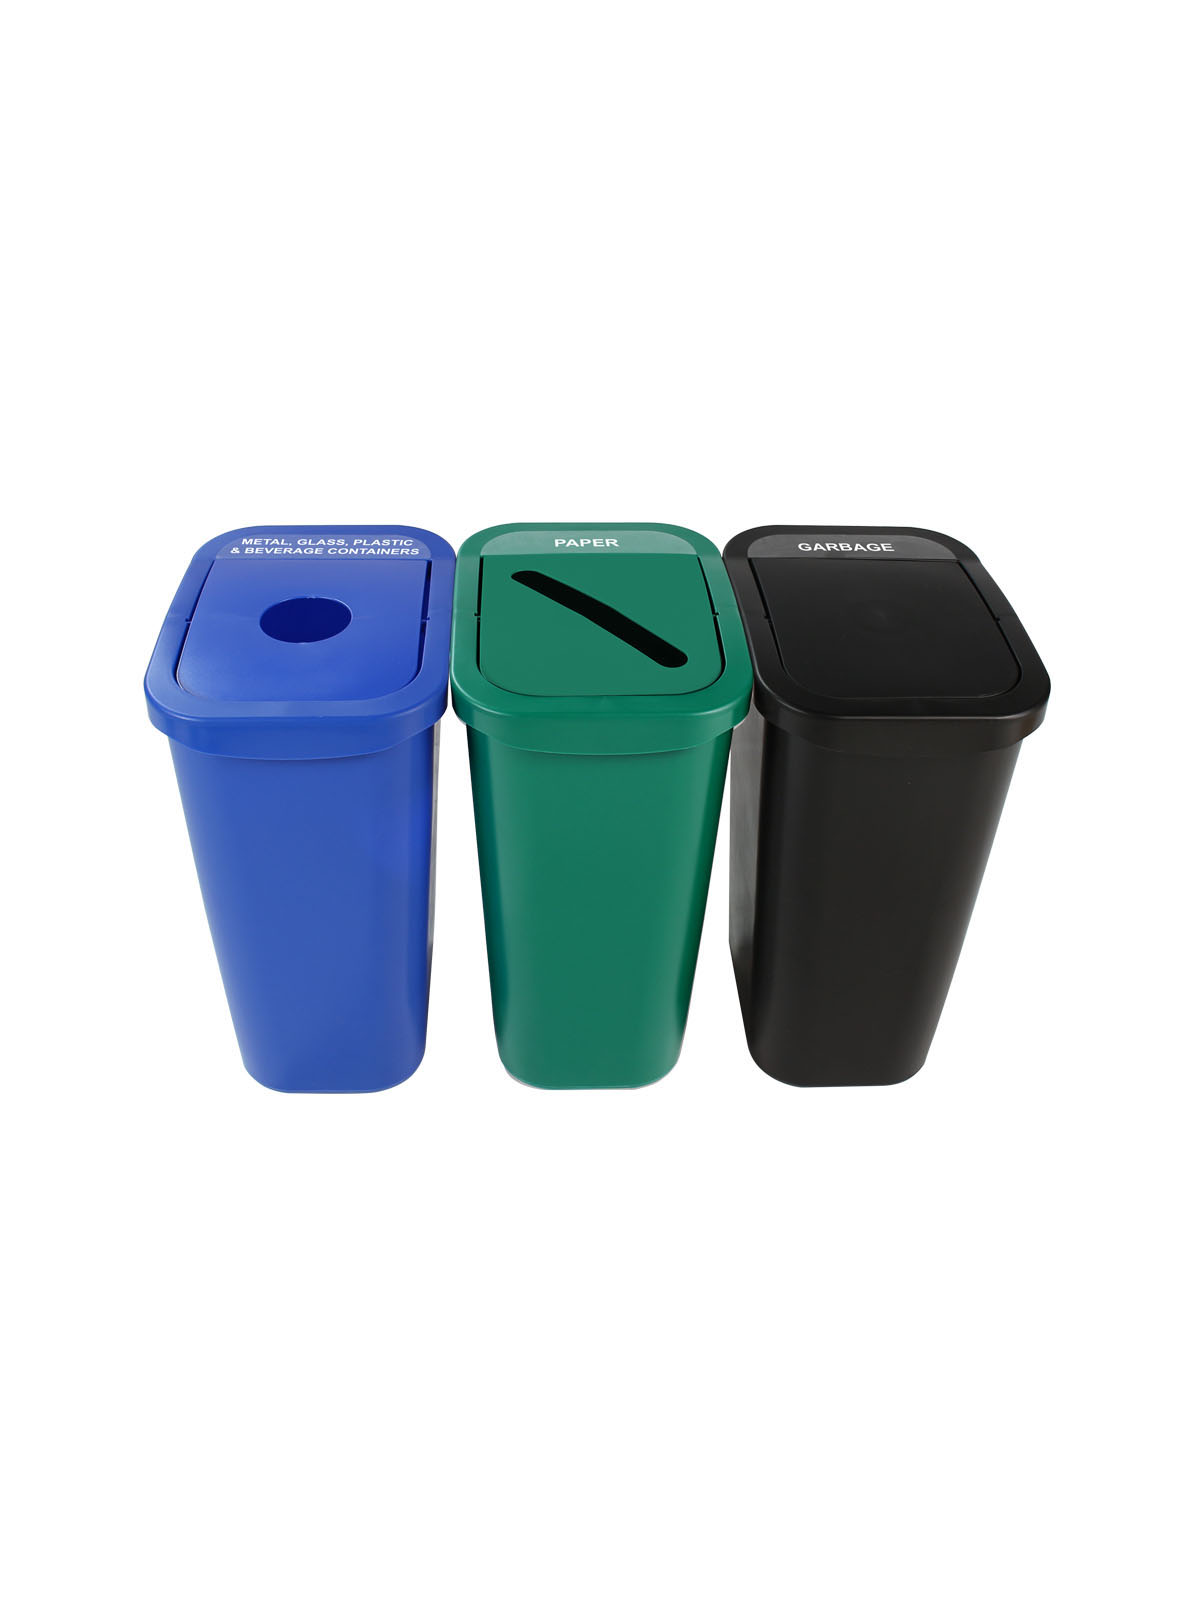 BILLI BOX - Triple - New York City Compliant - Metal, Glass, Plastic & Beverage Containers-Paper-Garbage - Circle-Slot-Swing - Blue-Green-Black title=